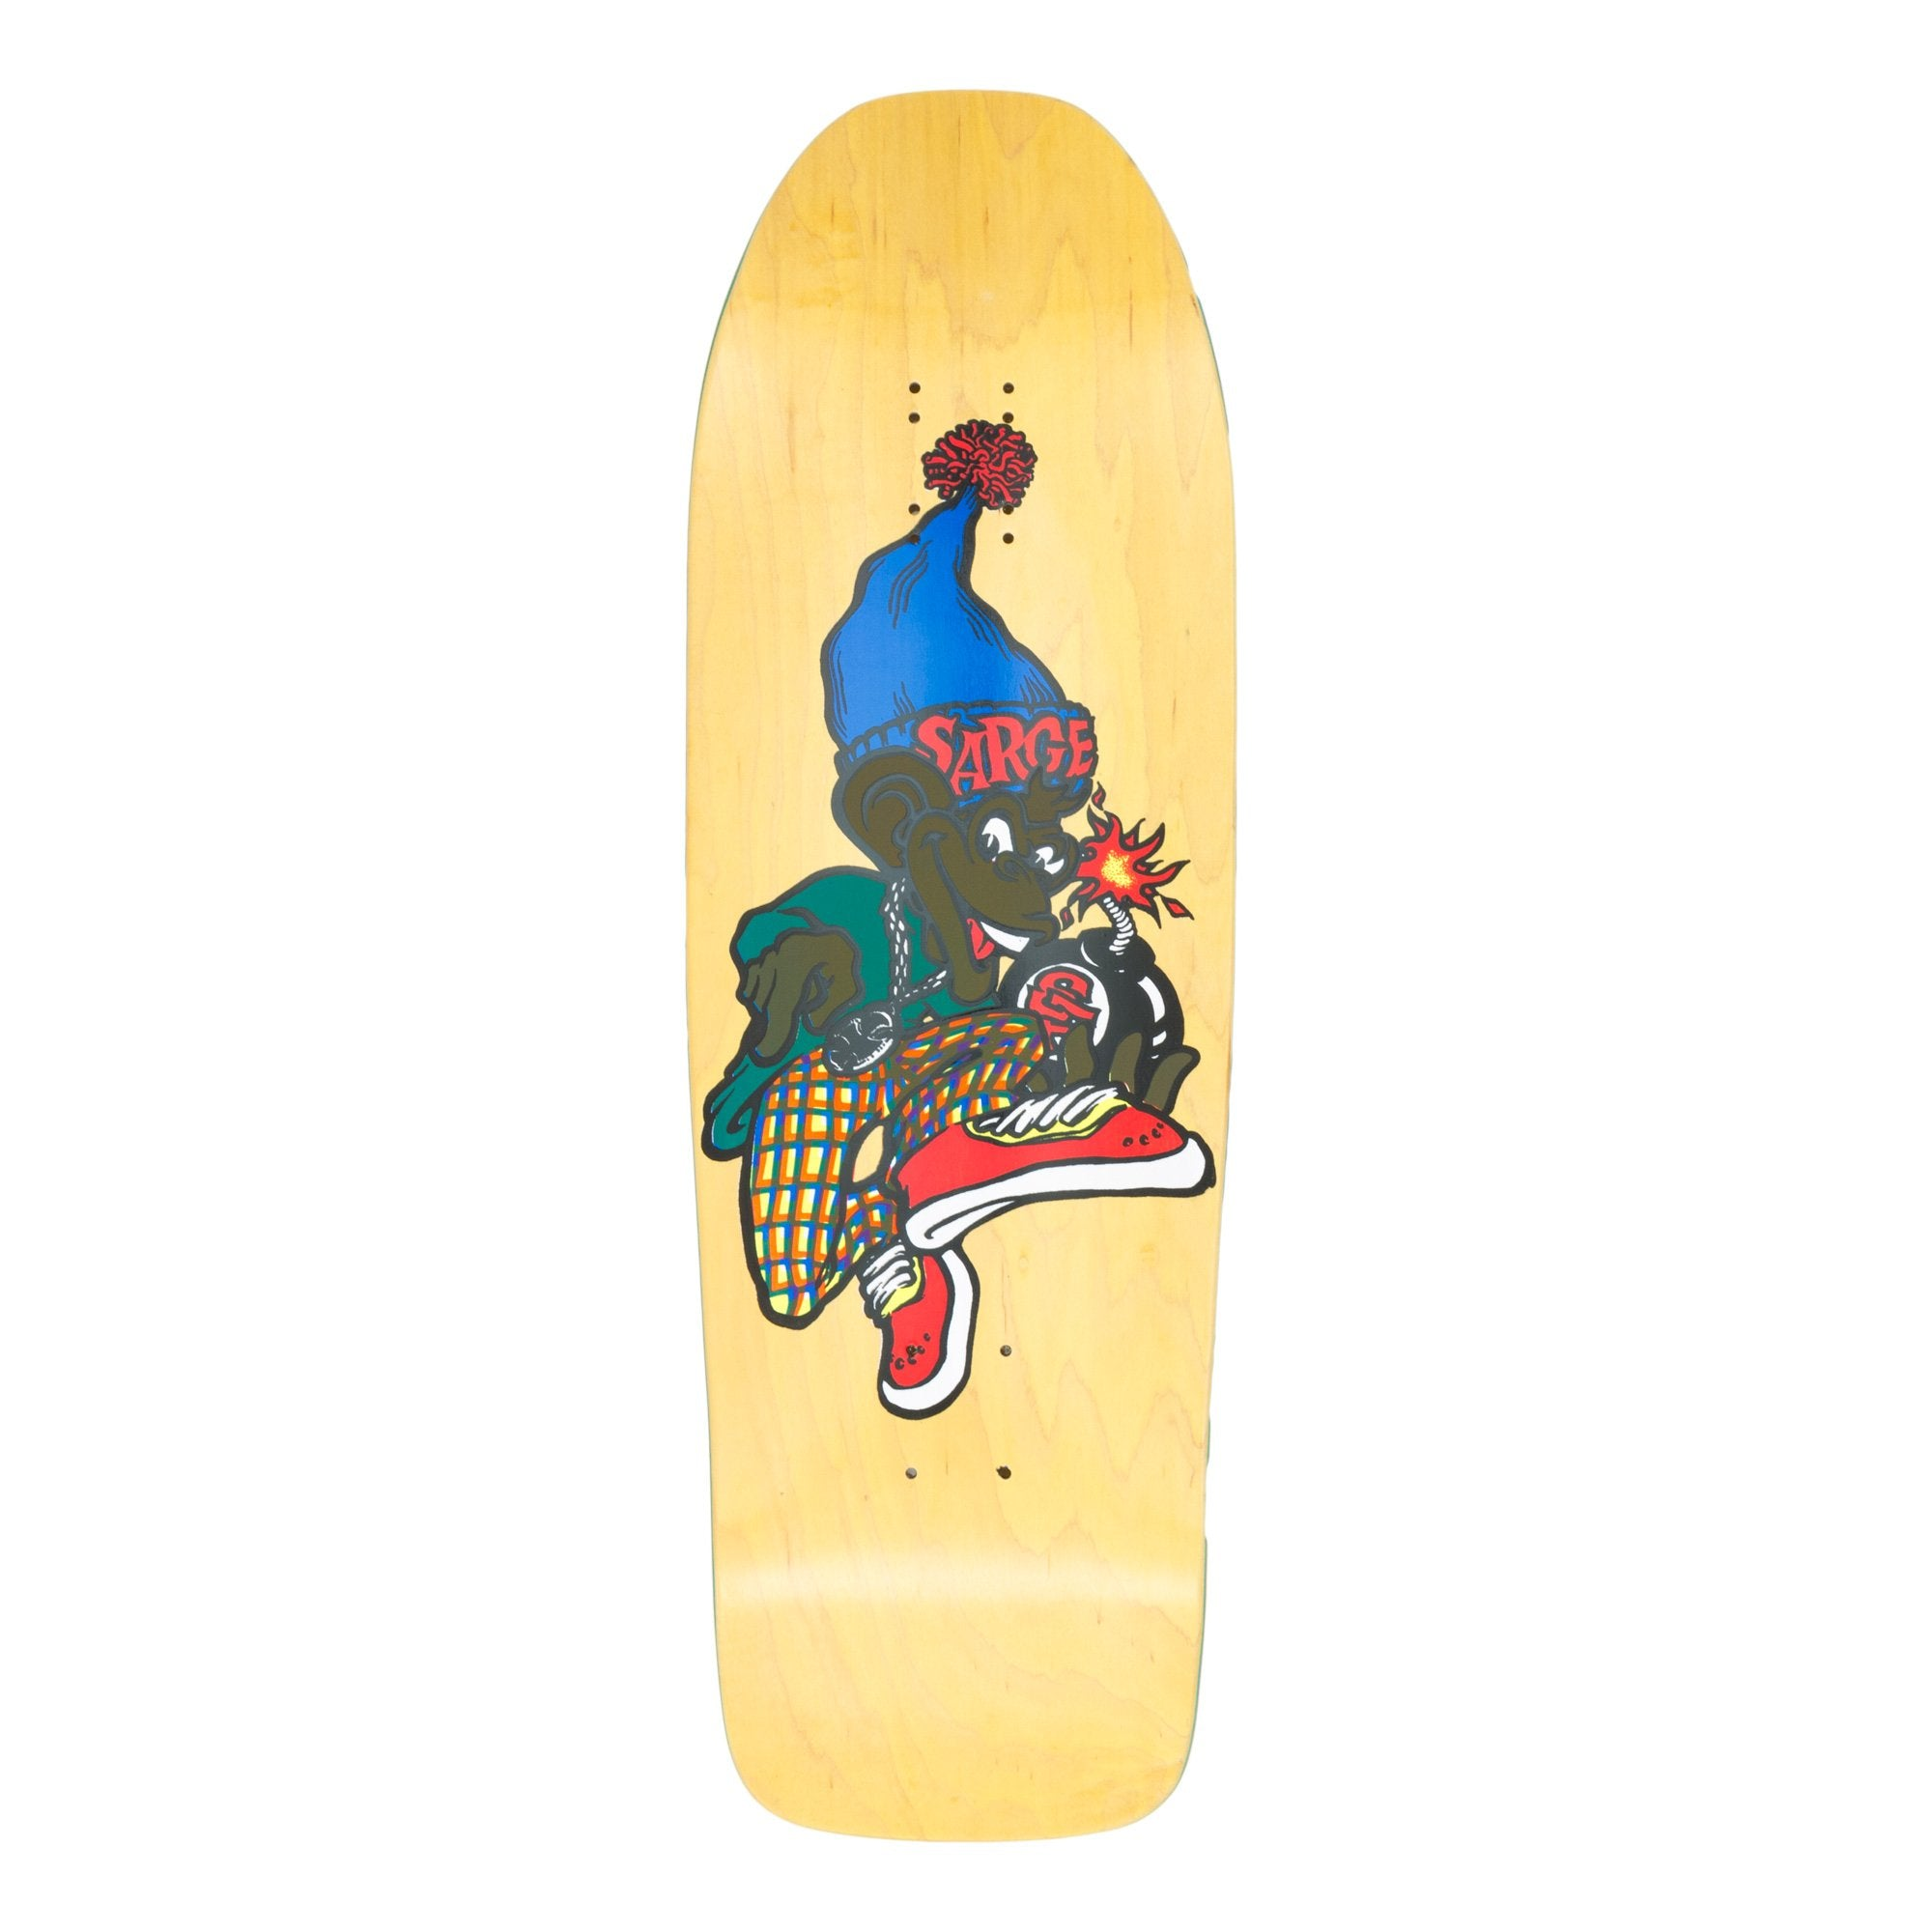 New Deal Sargent Monkey Bomber Screenprinted Deck - 9.625""